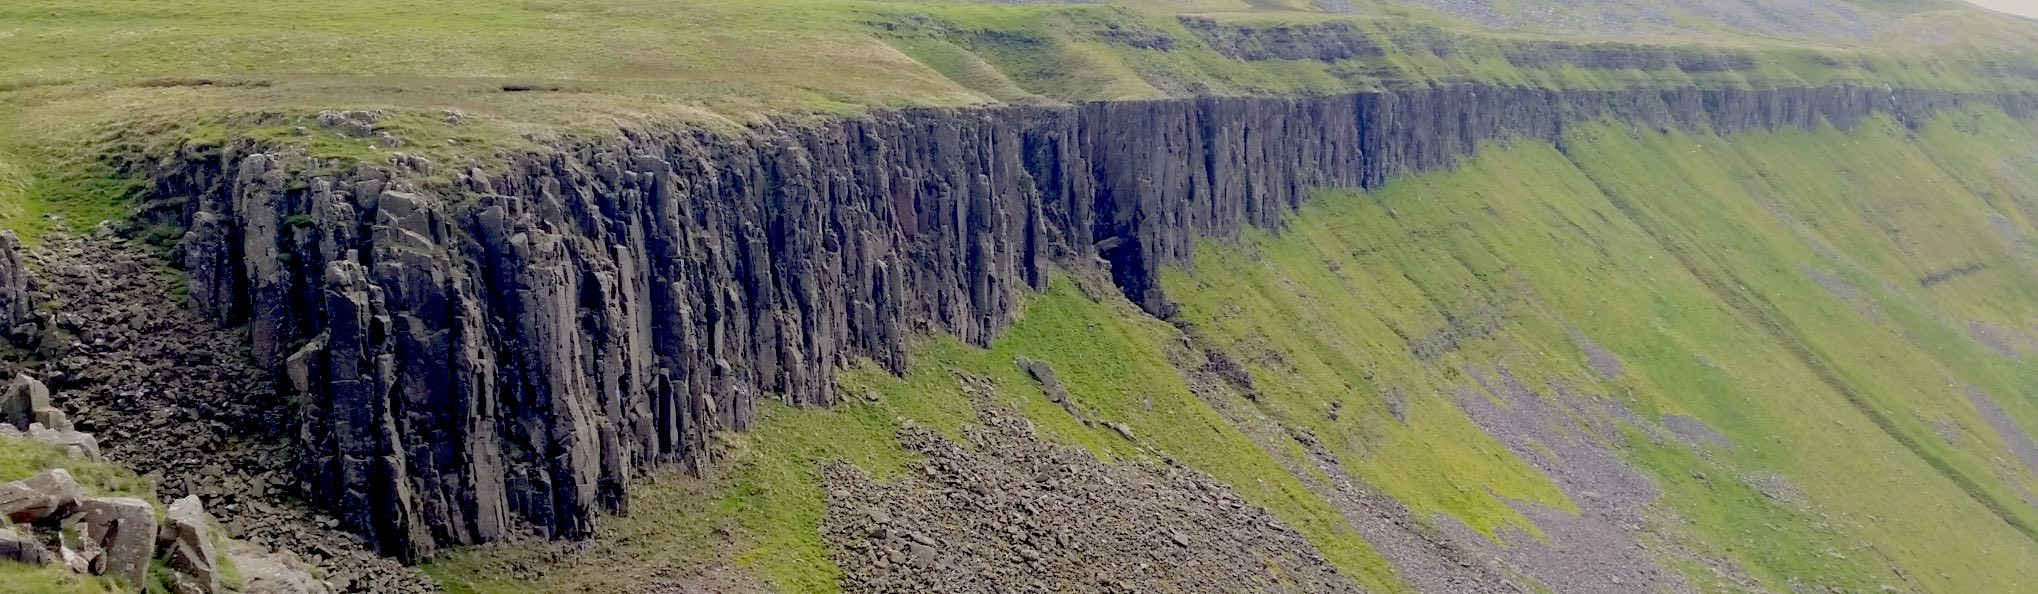 North Pennines - Cross Fell, High Cup Nick and High Force feature image